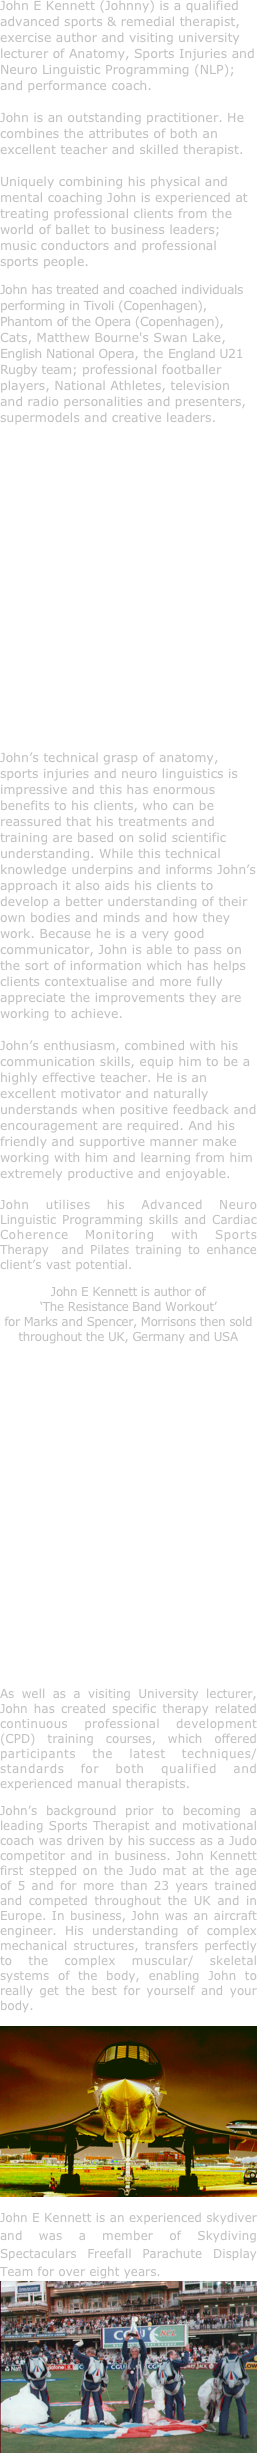 John E Kennett (Johnny) is a qualified advanced sports & remedial therapist, exercise author and visiting university lecturer of Anatomy, Sports Injuries and Neuro Linguistic Programming (NLP); and performance coach.